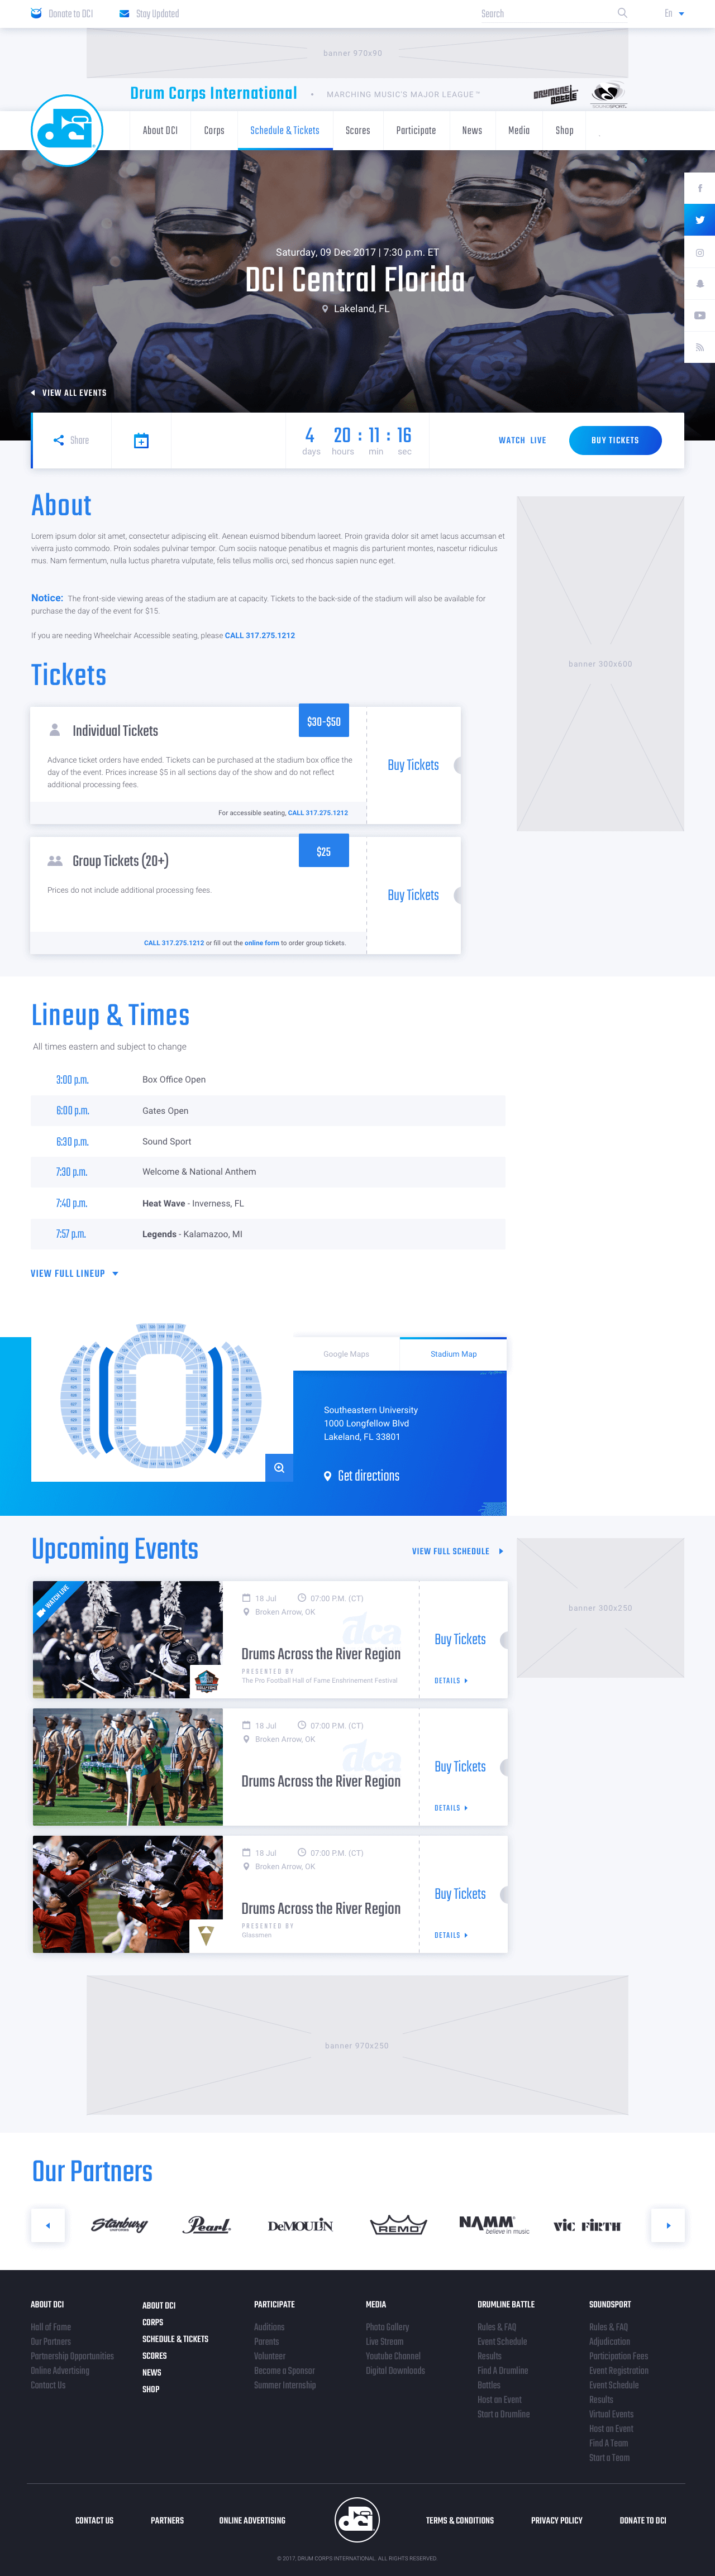 Drum Corps International Web Design